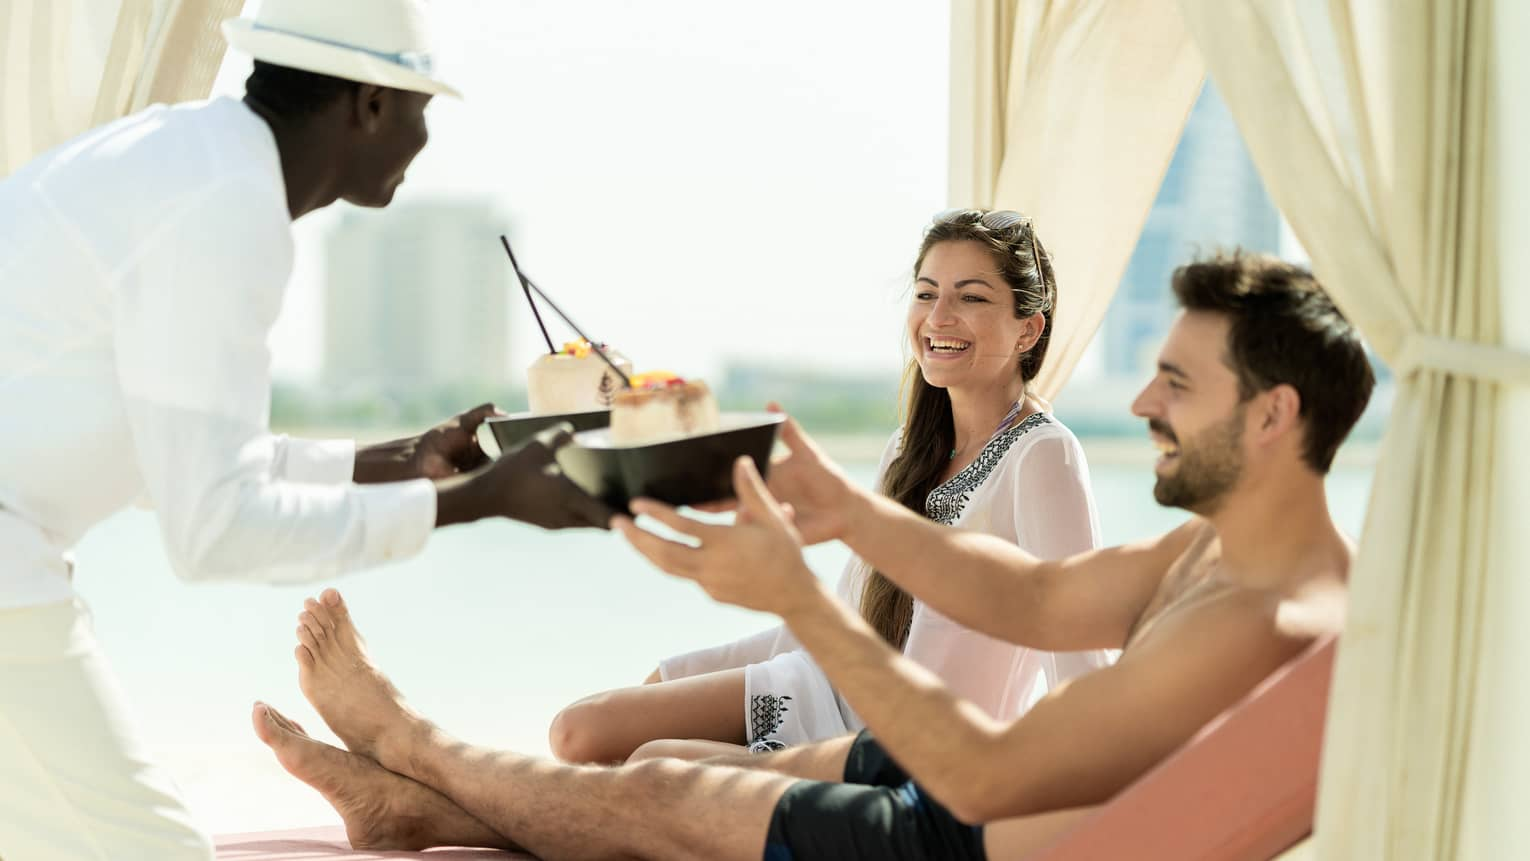 A four seasons staff hands two dishes to a man and woman as they lounge poolside